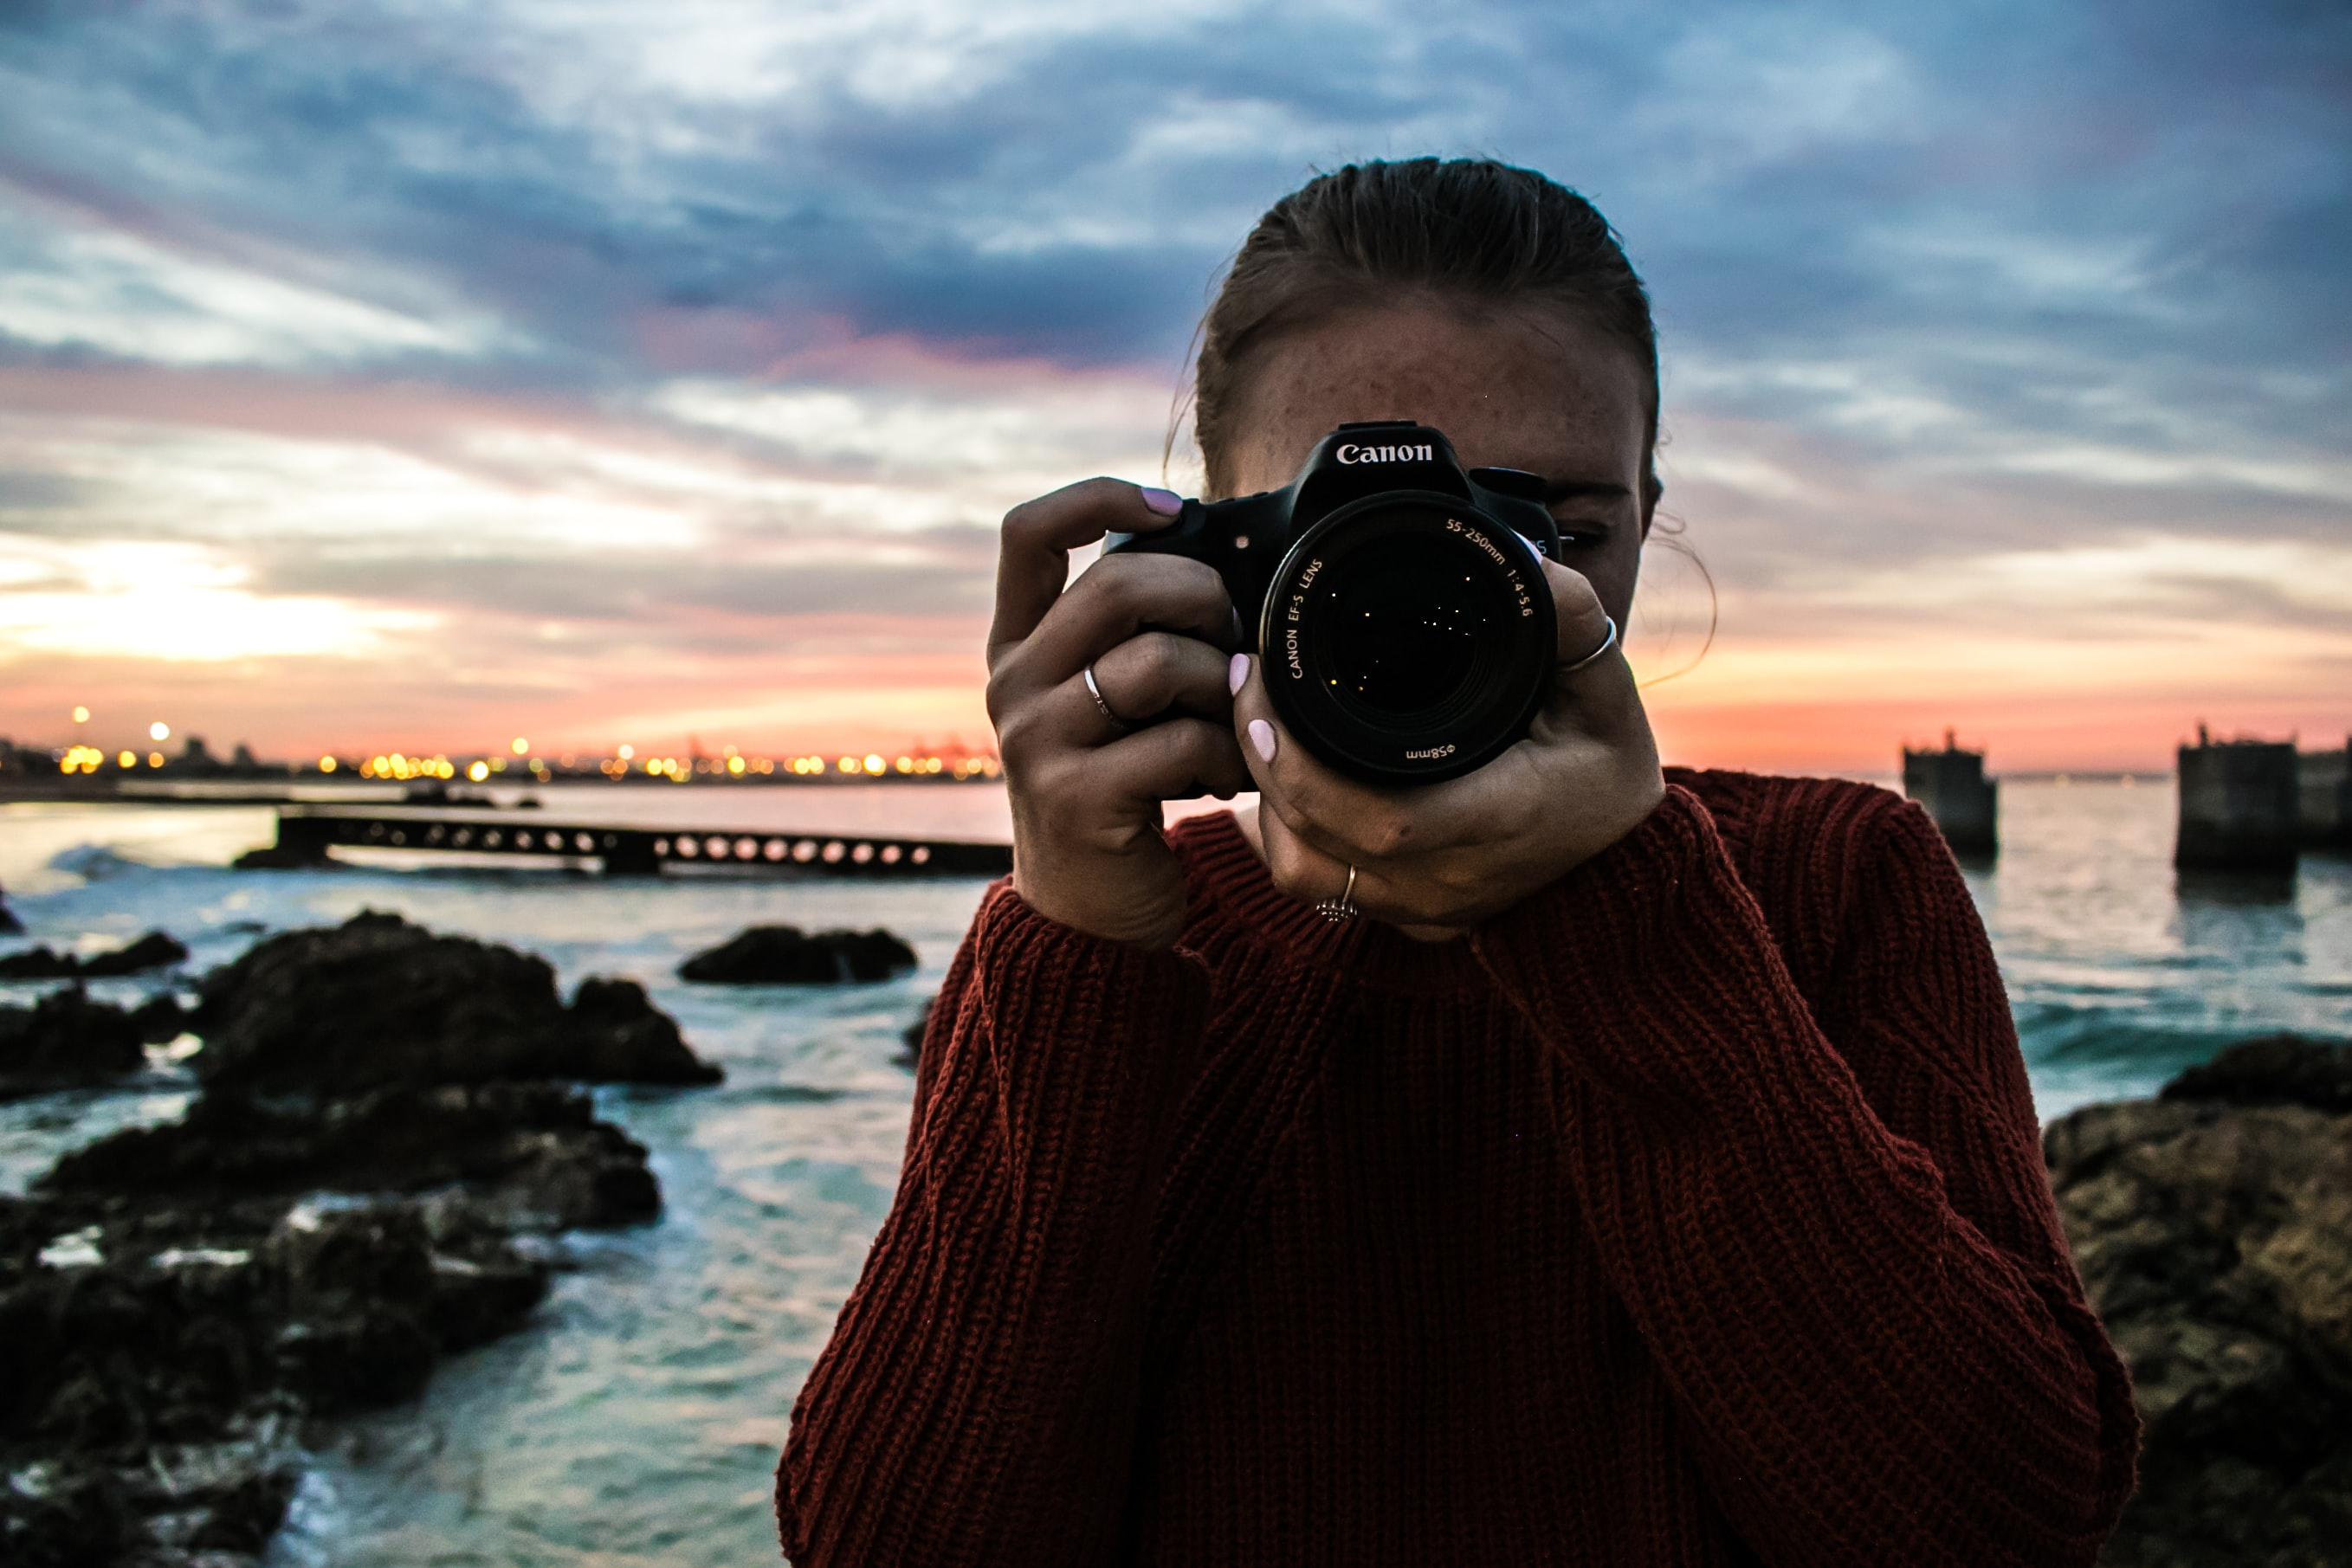 photo of woman holding black Canon DSLR camera near body of water